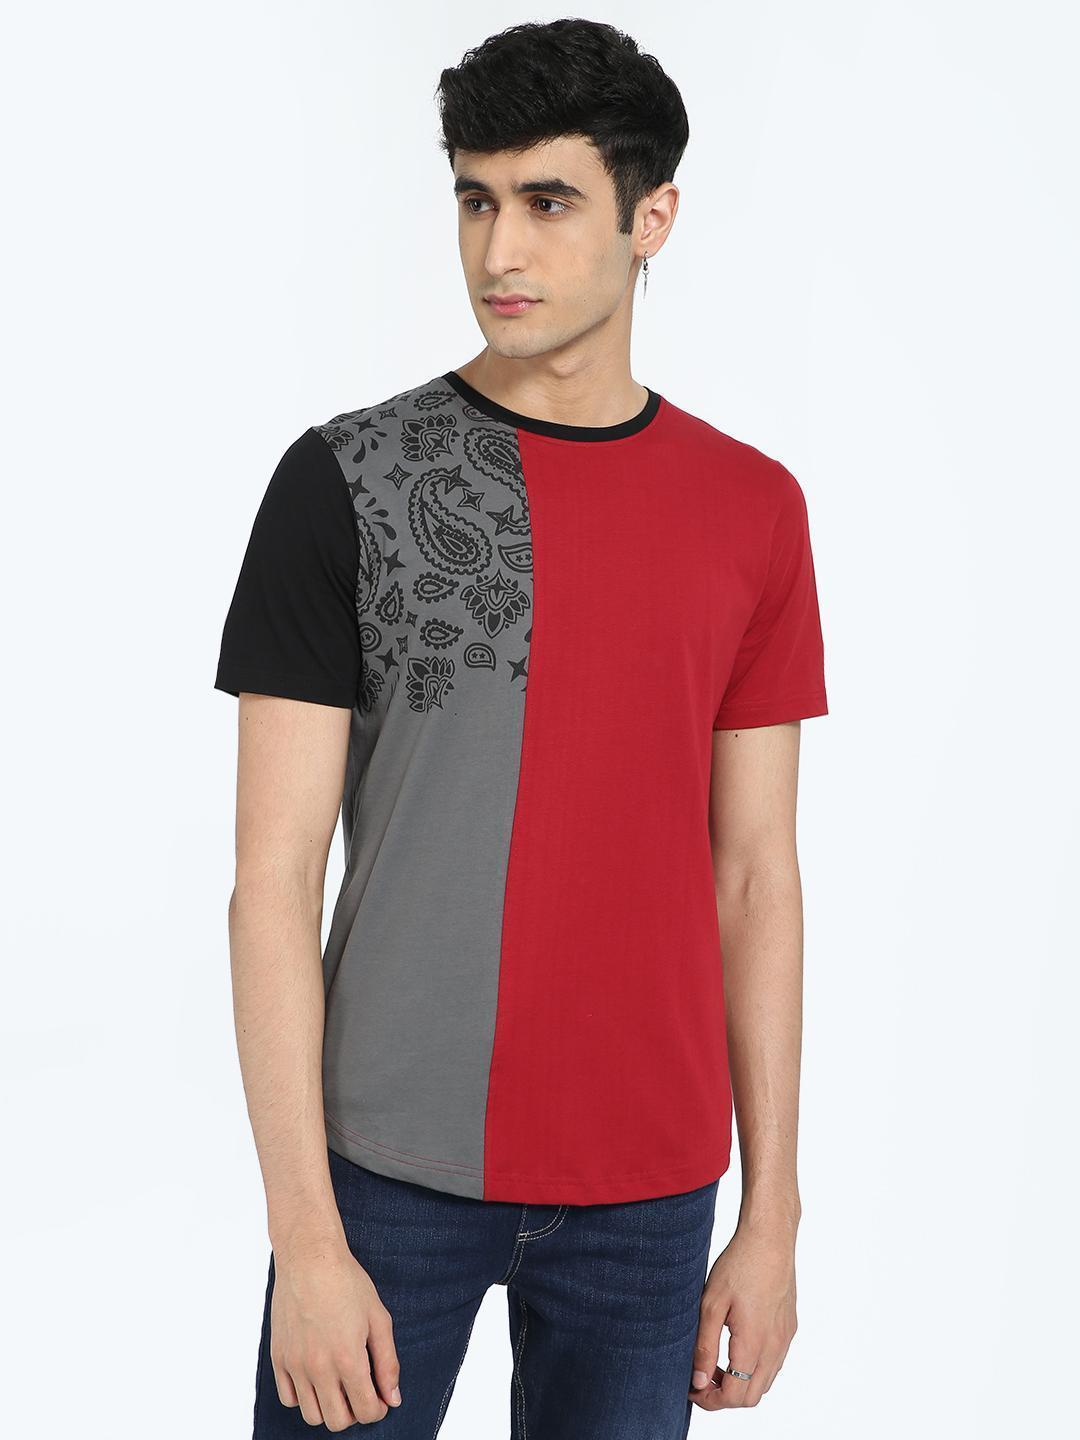 IMPACKT Multi Paisley Print Colour Block T-Shirt 1